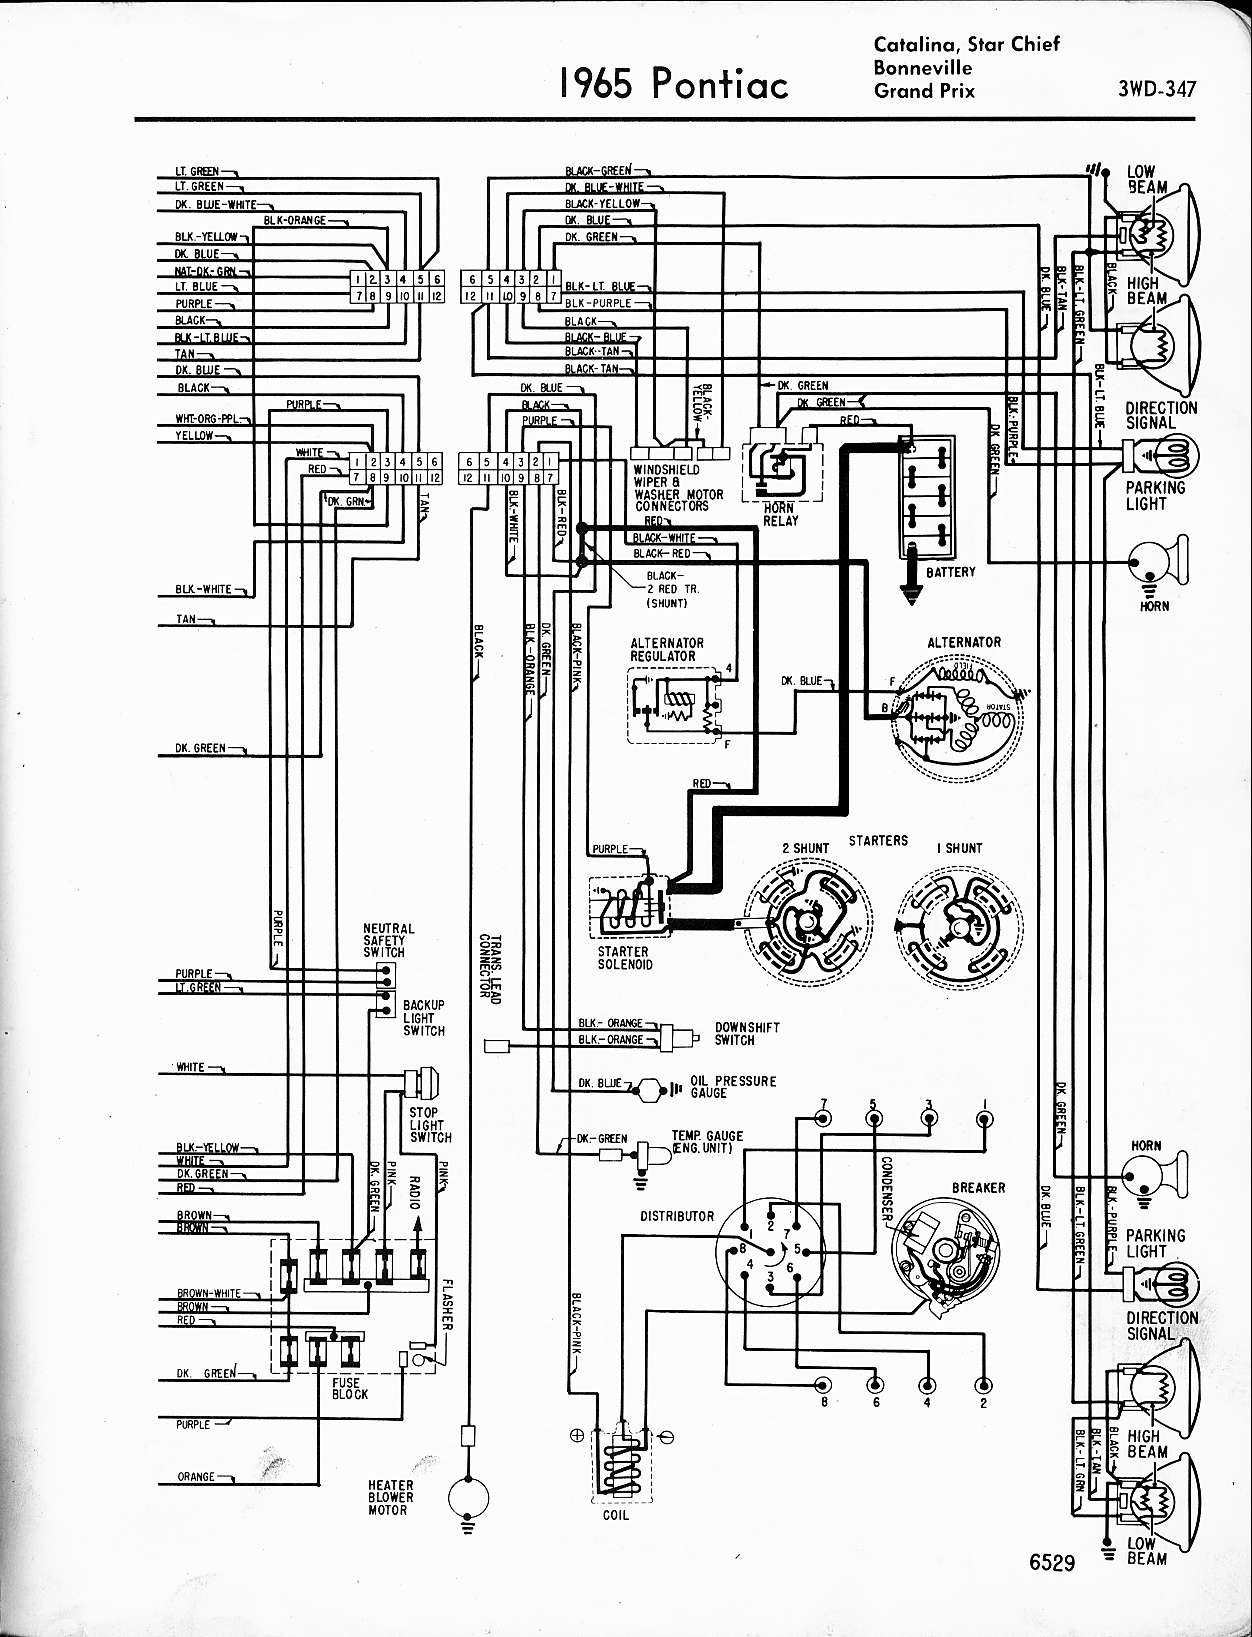 Wallace Racing Wiring Diagrams Free Weebly 1965 Catalina Star Chief Bonneville Grand Prix Left Page